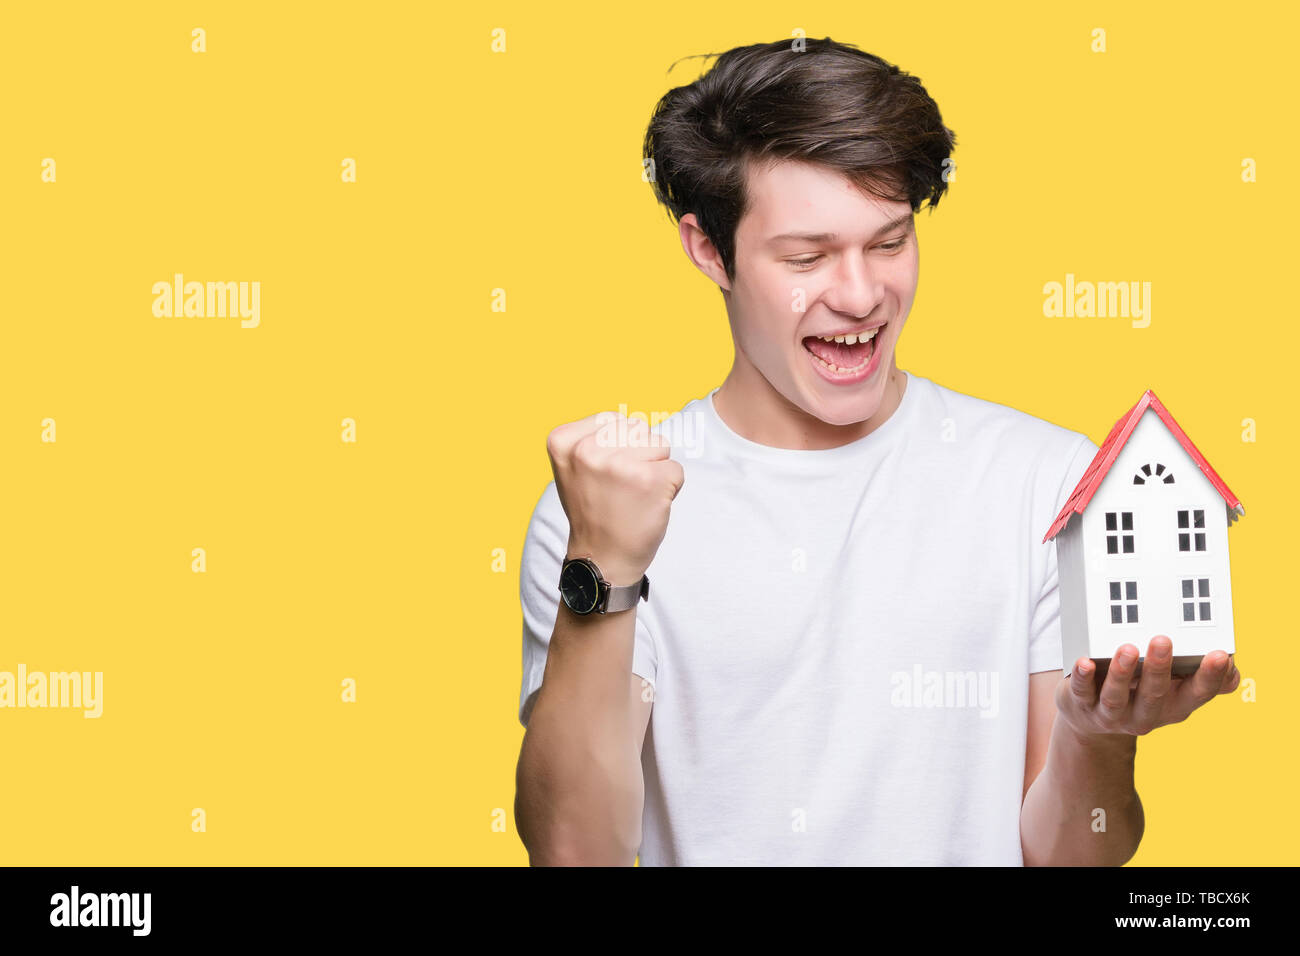 Young man holding house over isolated background screaming proud and celebrating victory and success very excited, cheering emotion - Stock Image